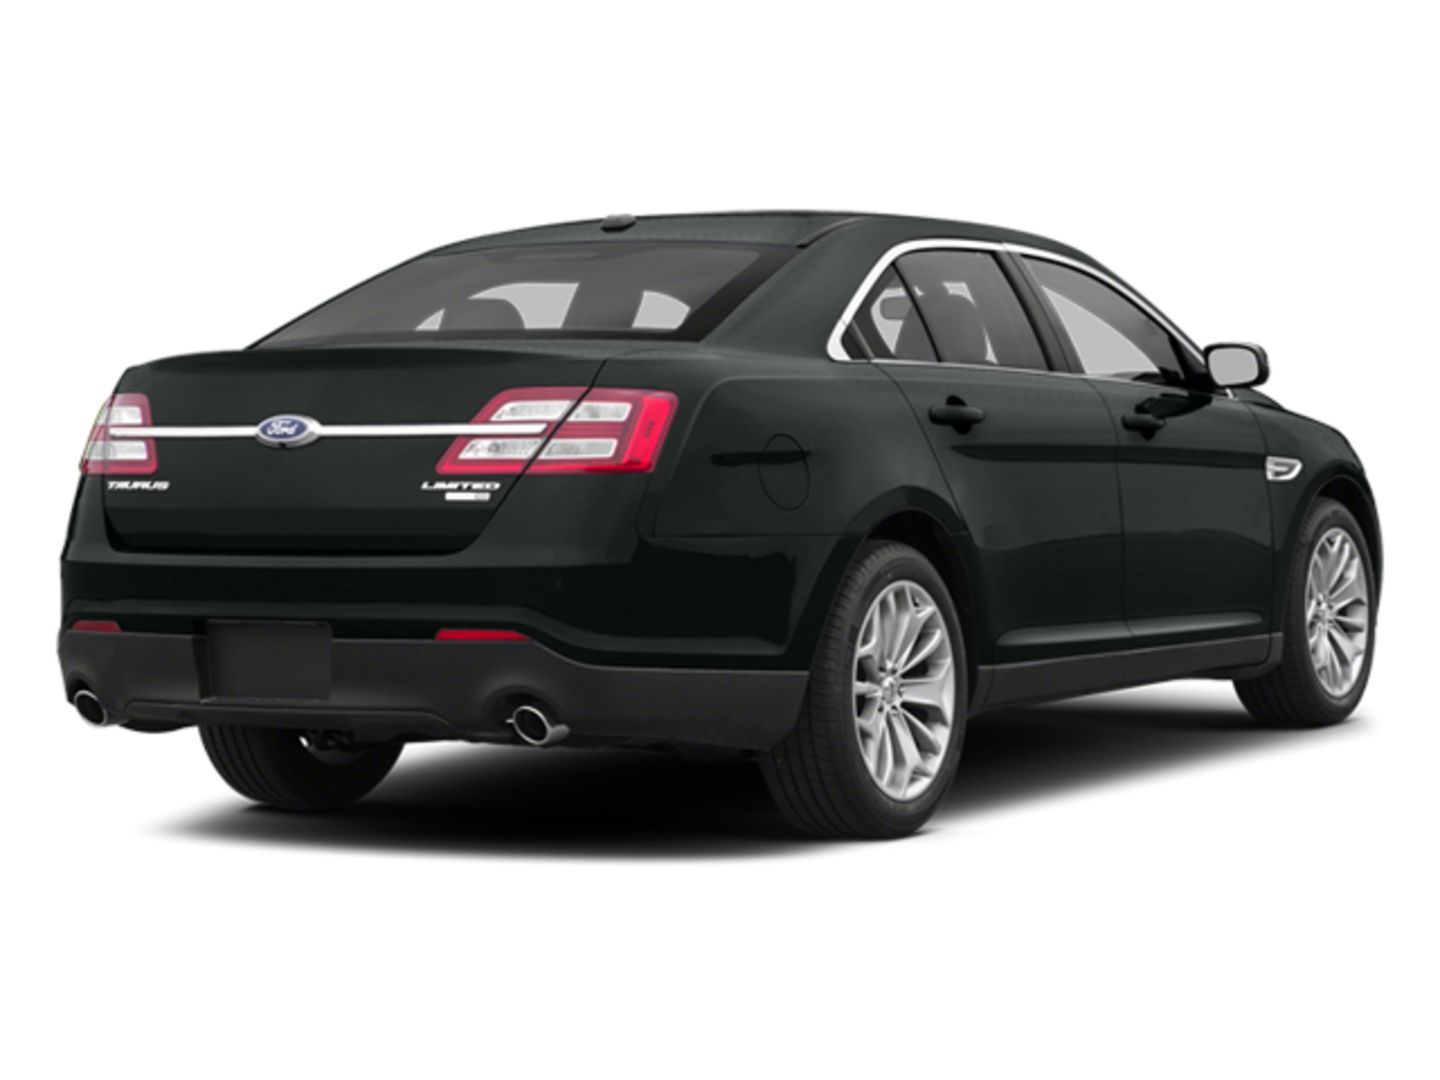 2014 Ford Taurus Limited for sale in Yellowknife, Northwest Territories